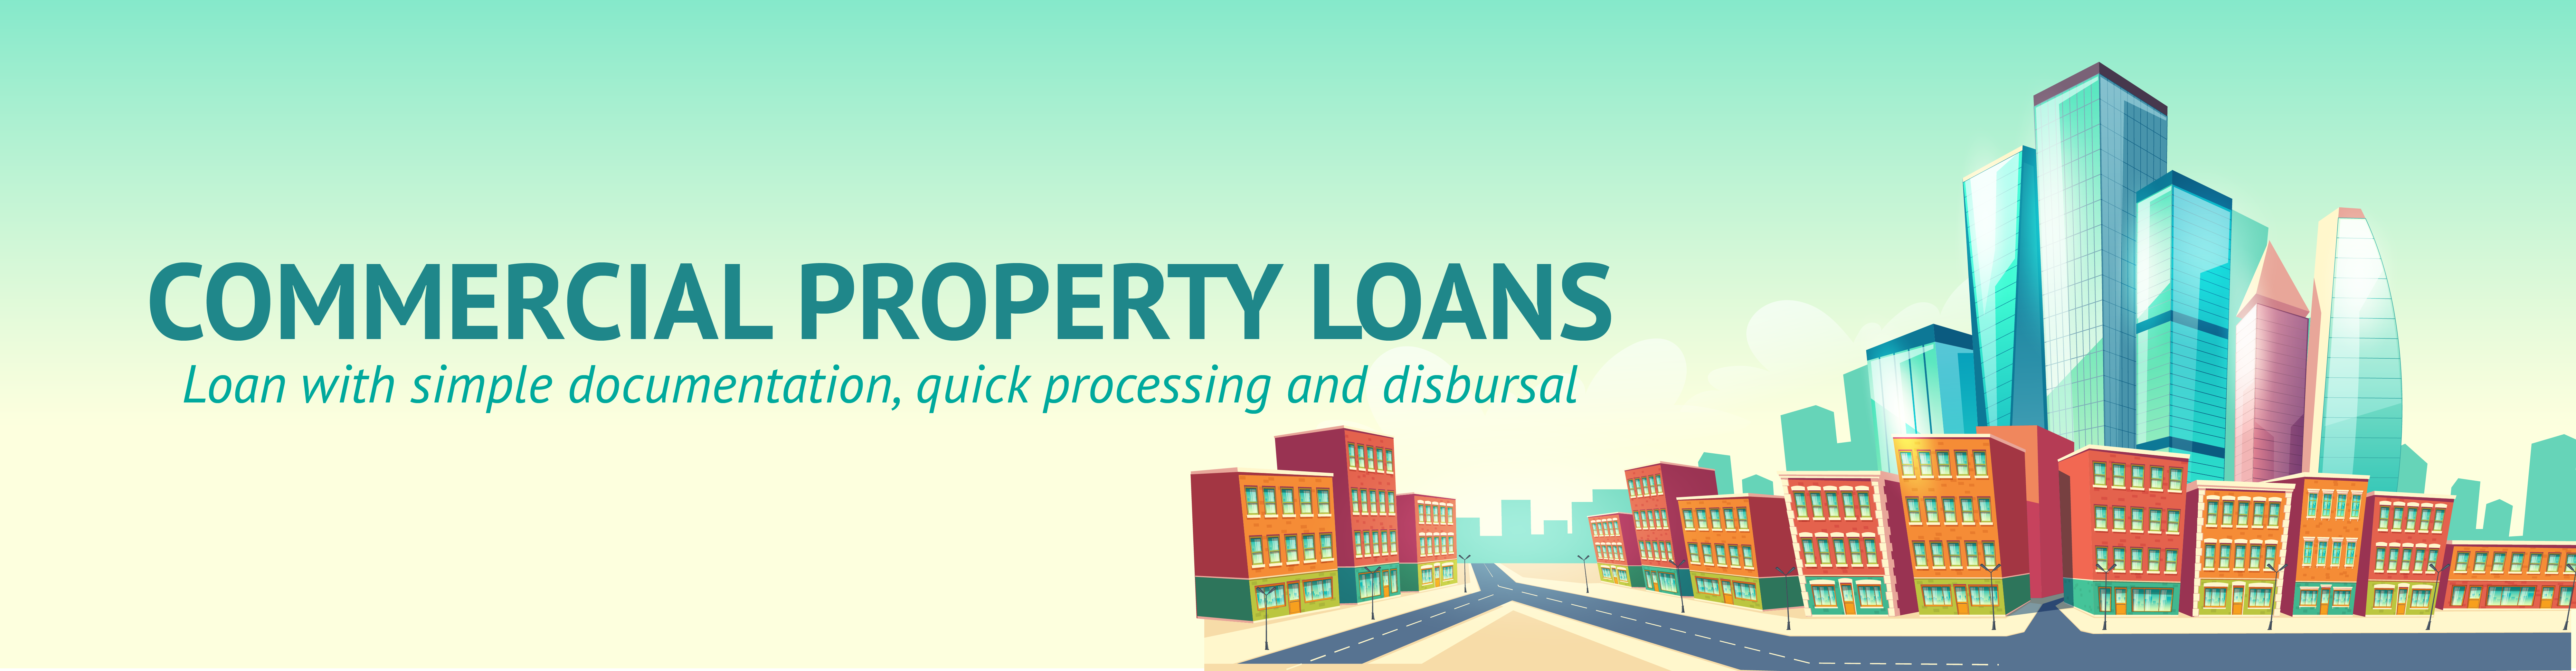 commercial property loans